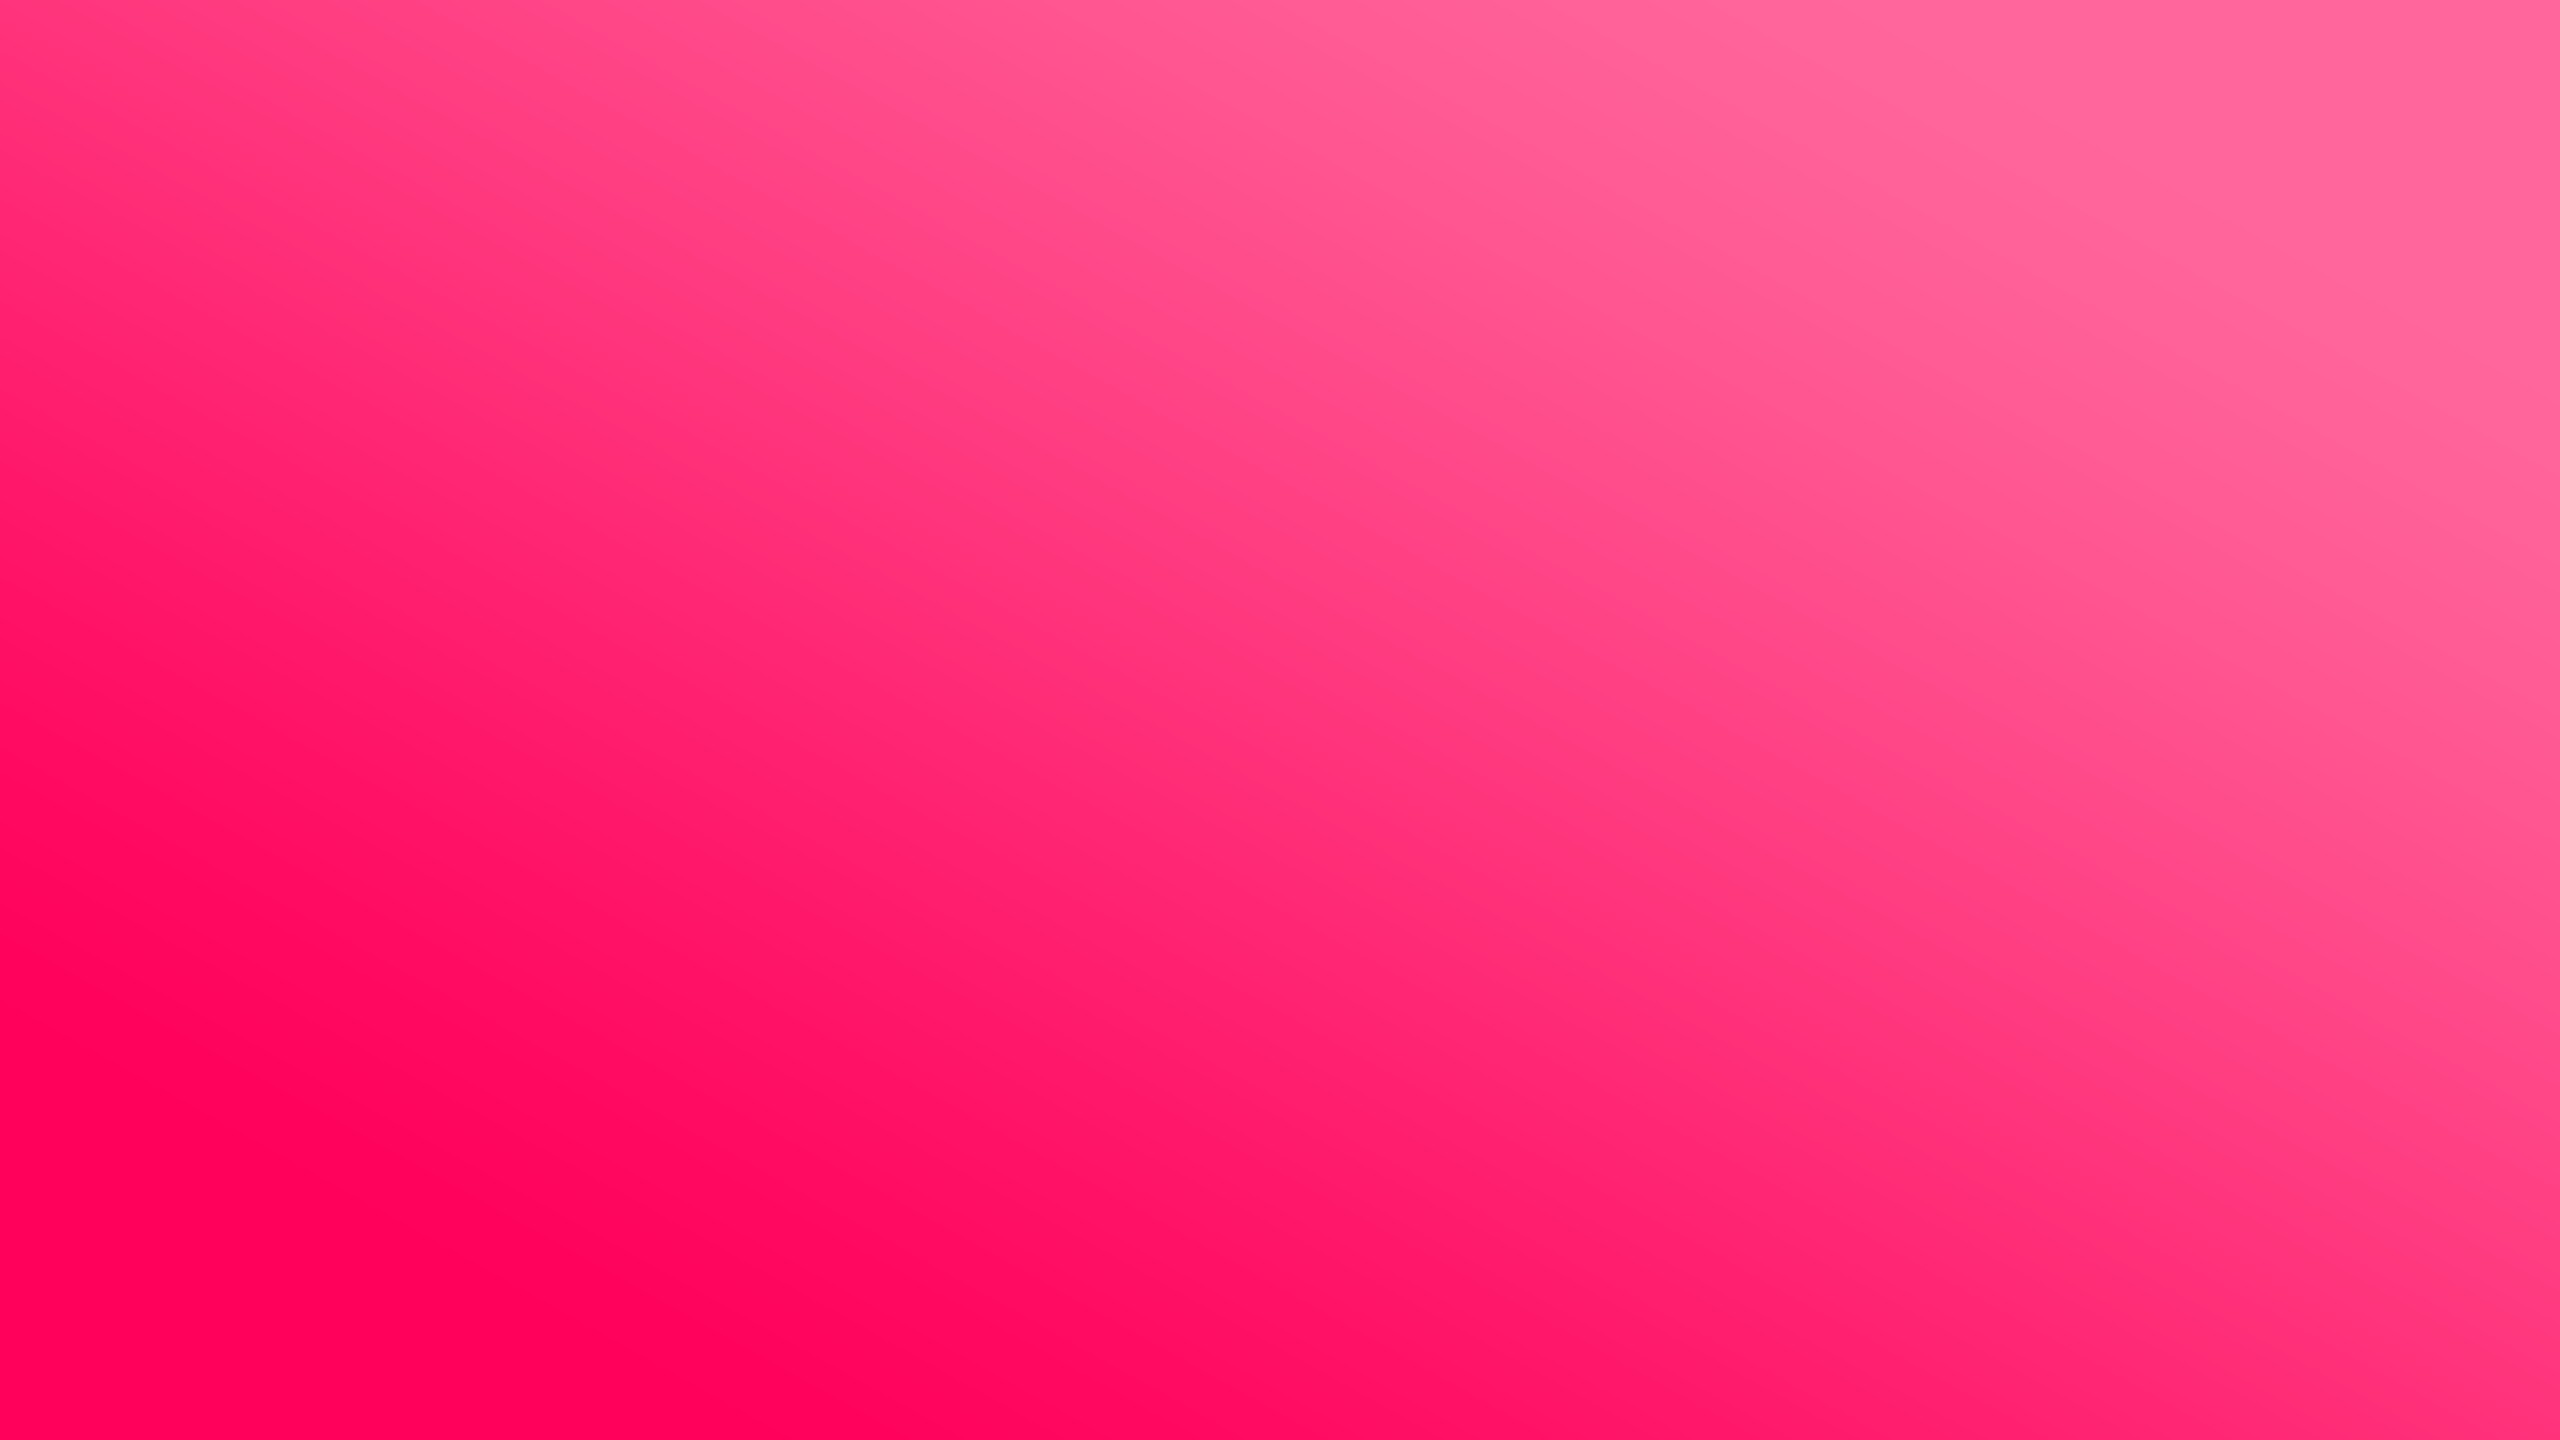 Pink Color Images Colour Hd Wallpaper And Background Photos